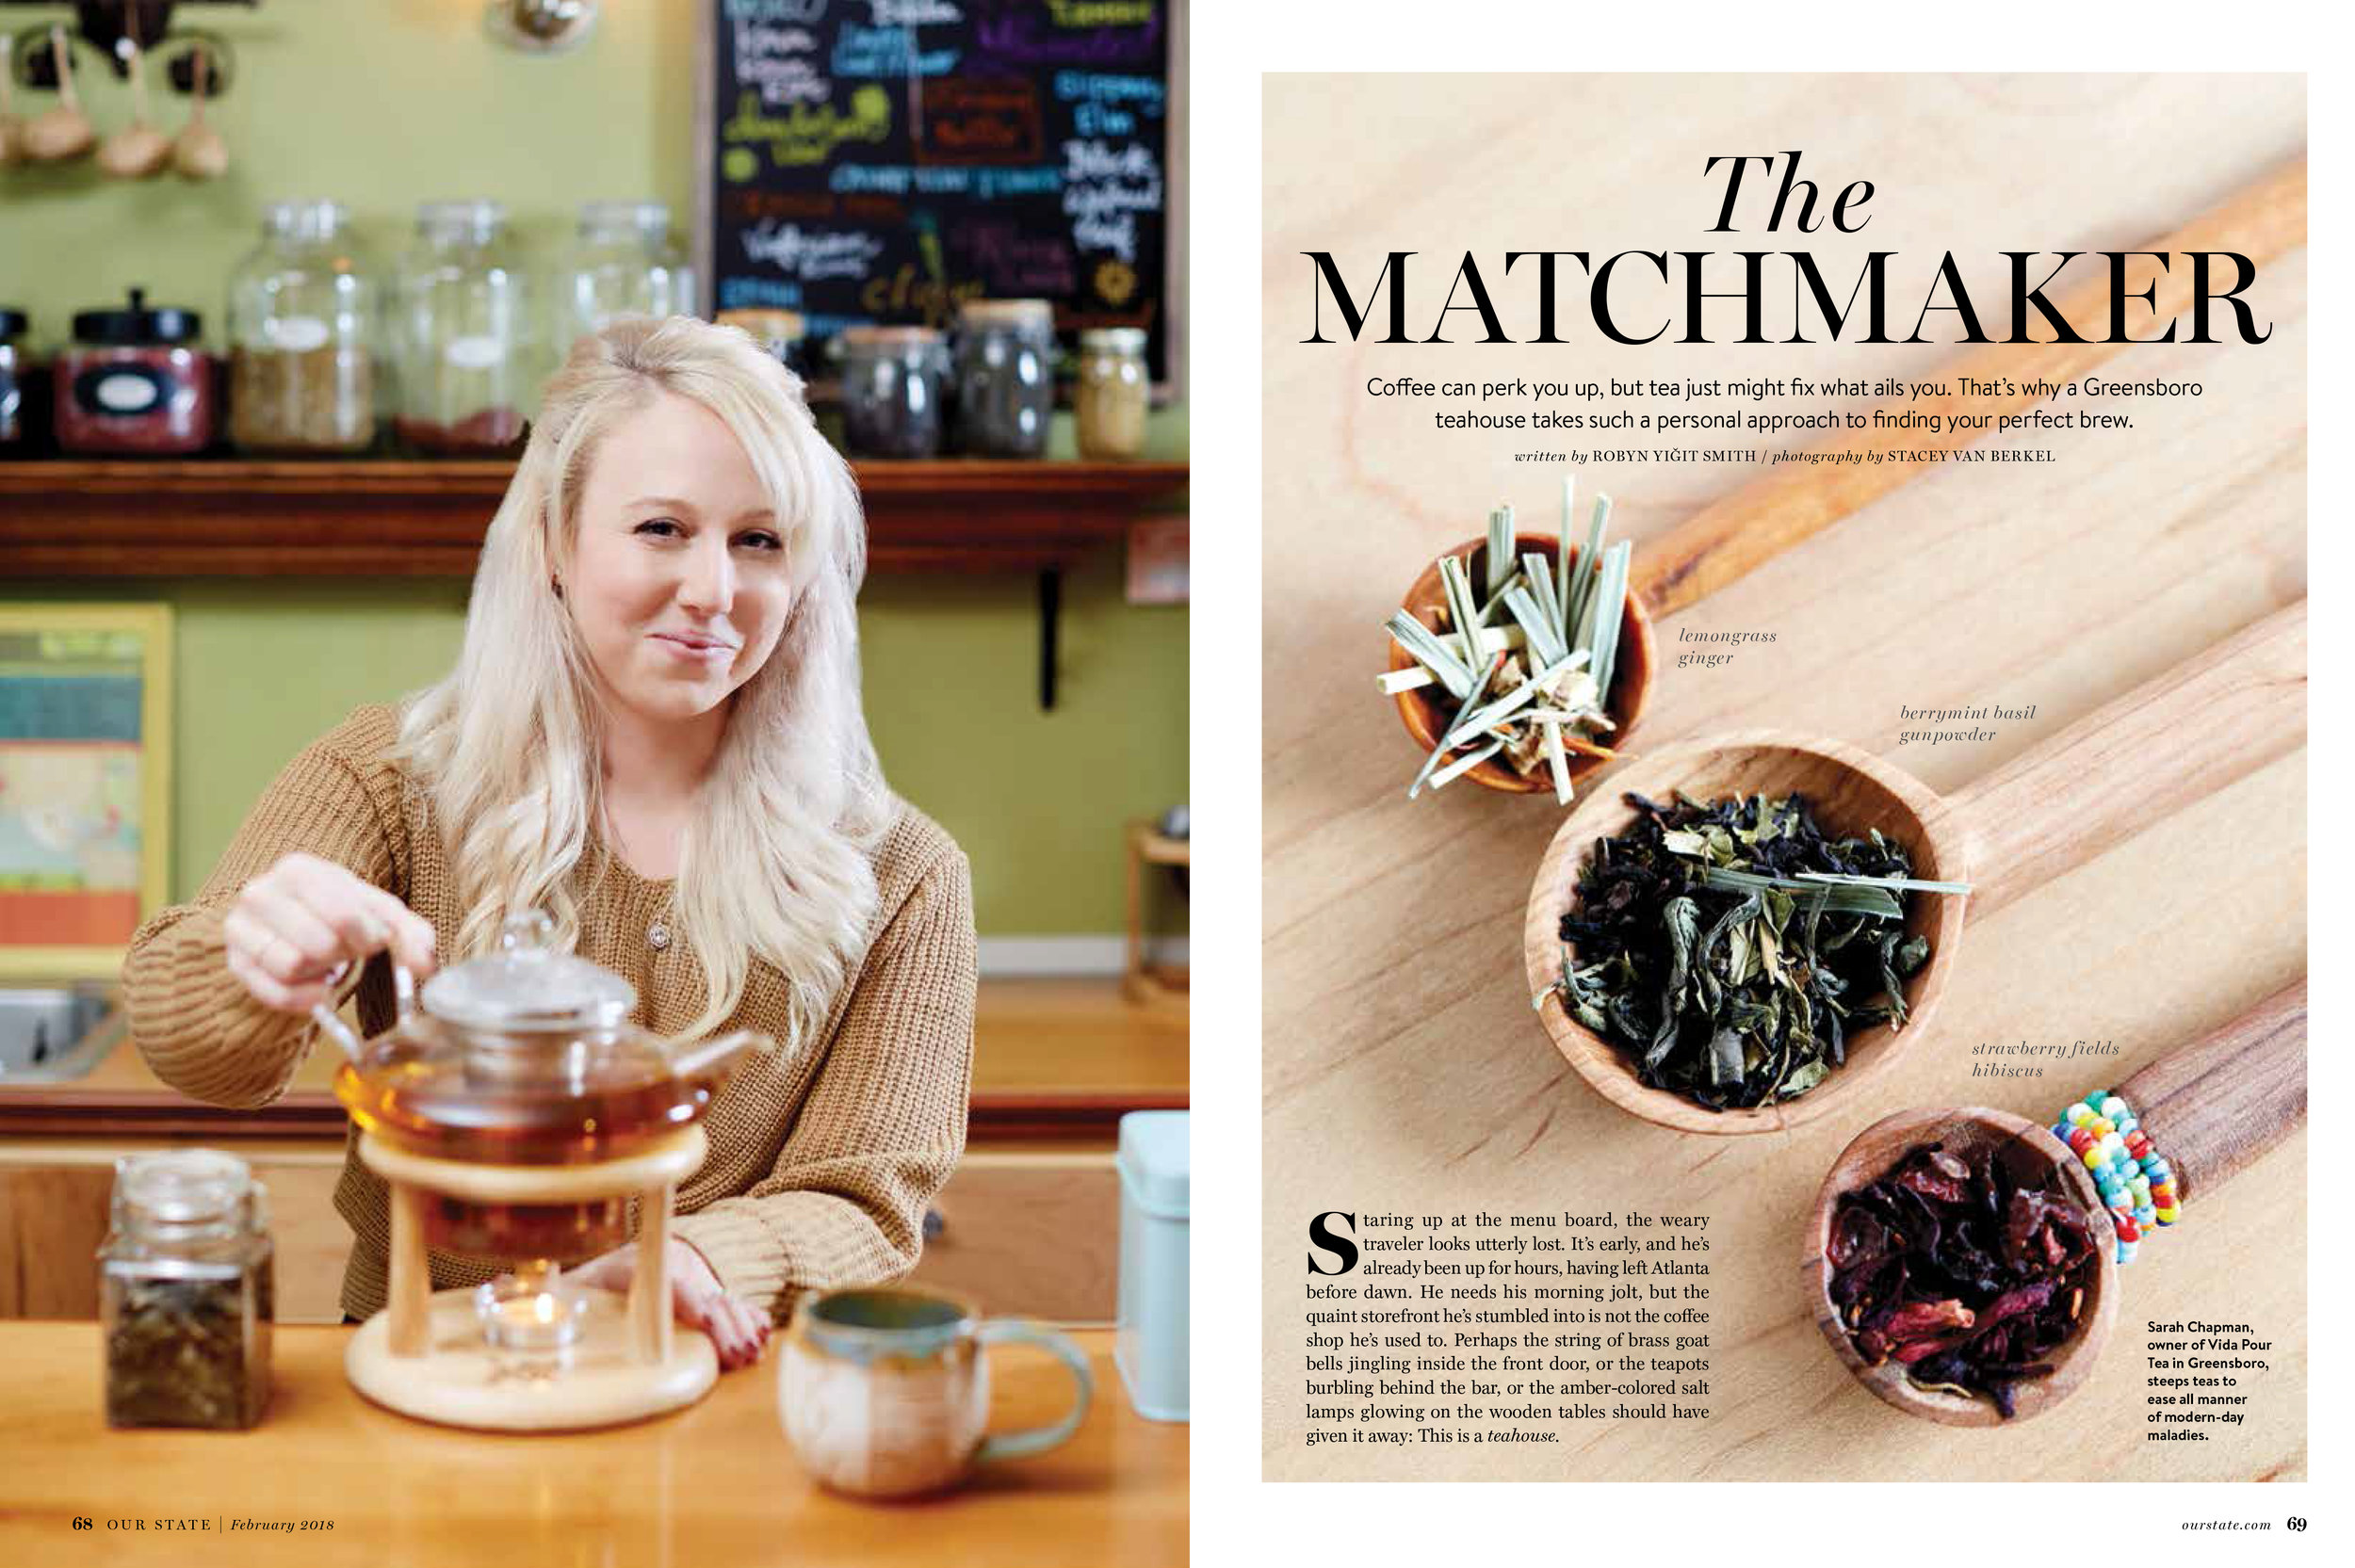 Check us out - Vida Pour Tea was recently featured in Our State Magazine - click the photo to see the full article.